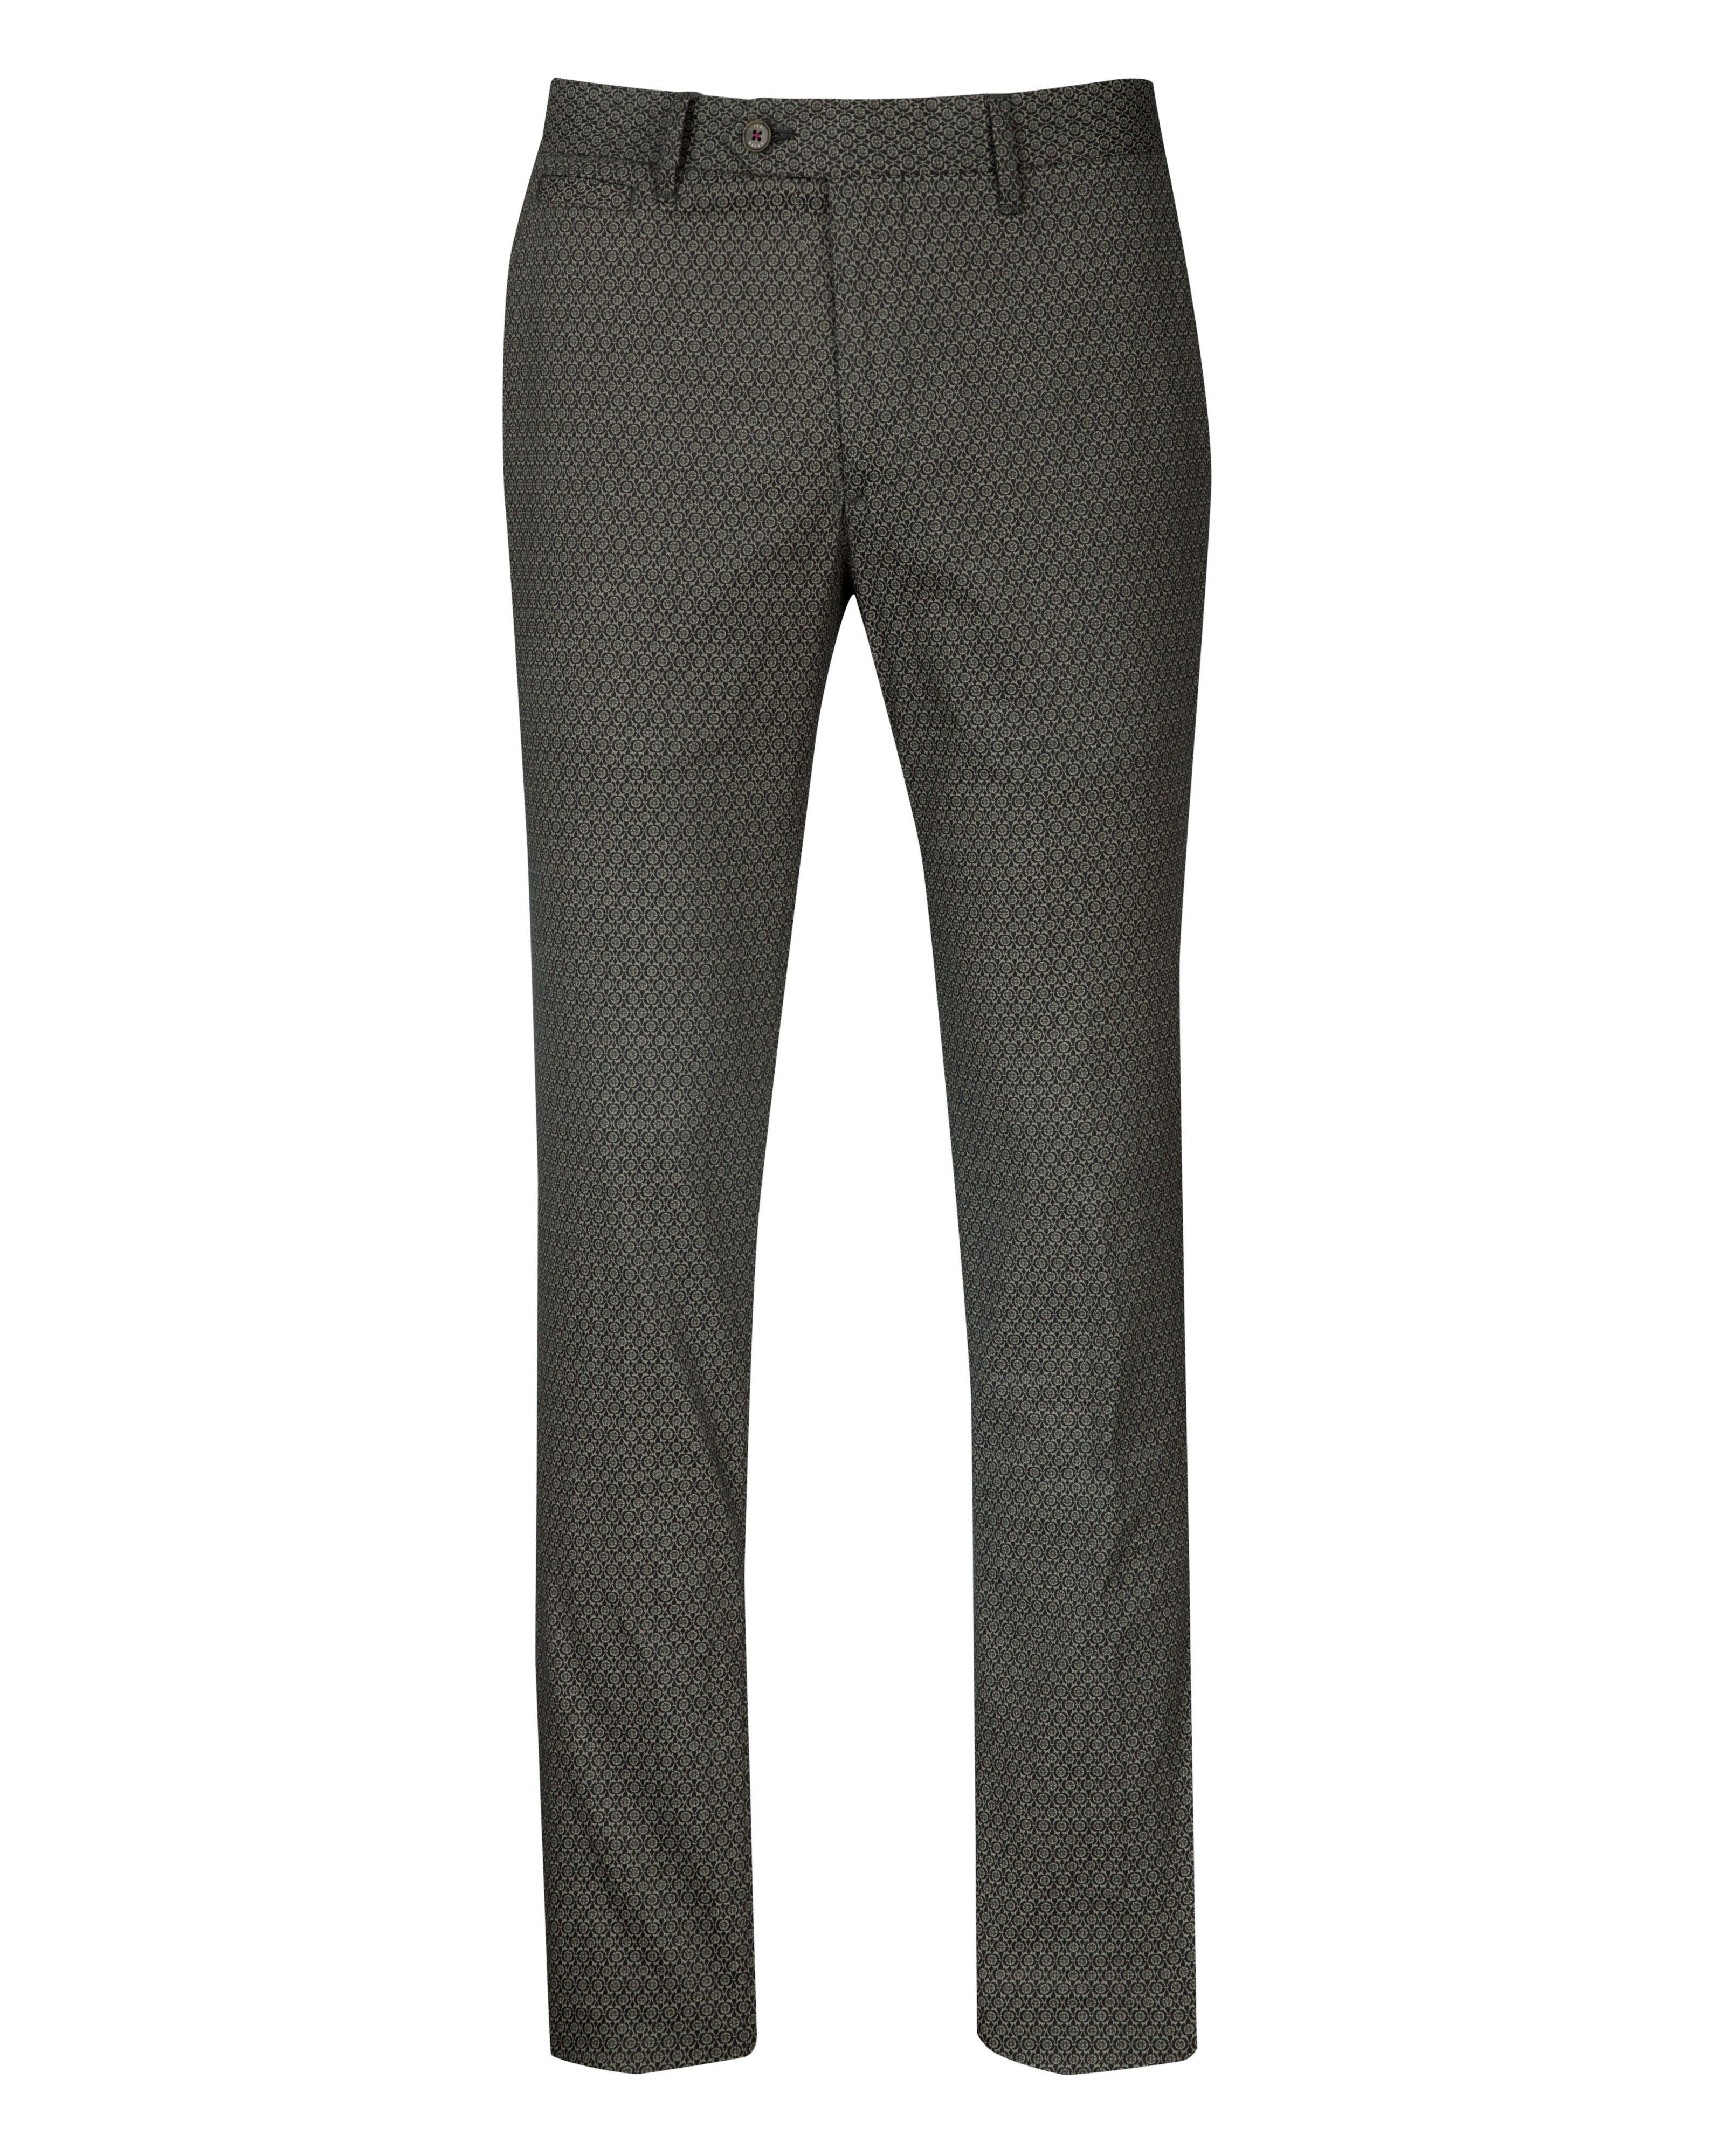 Oaktro printed cotton trouser